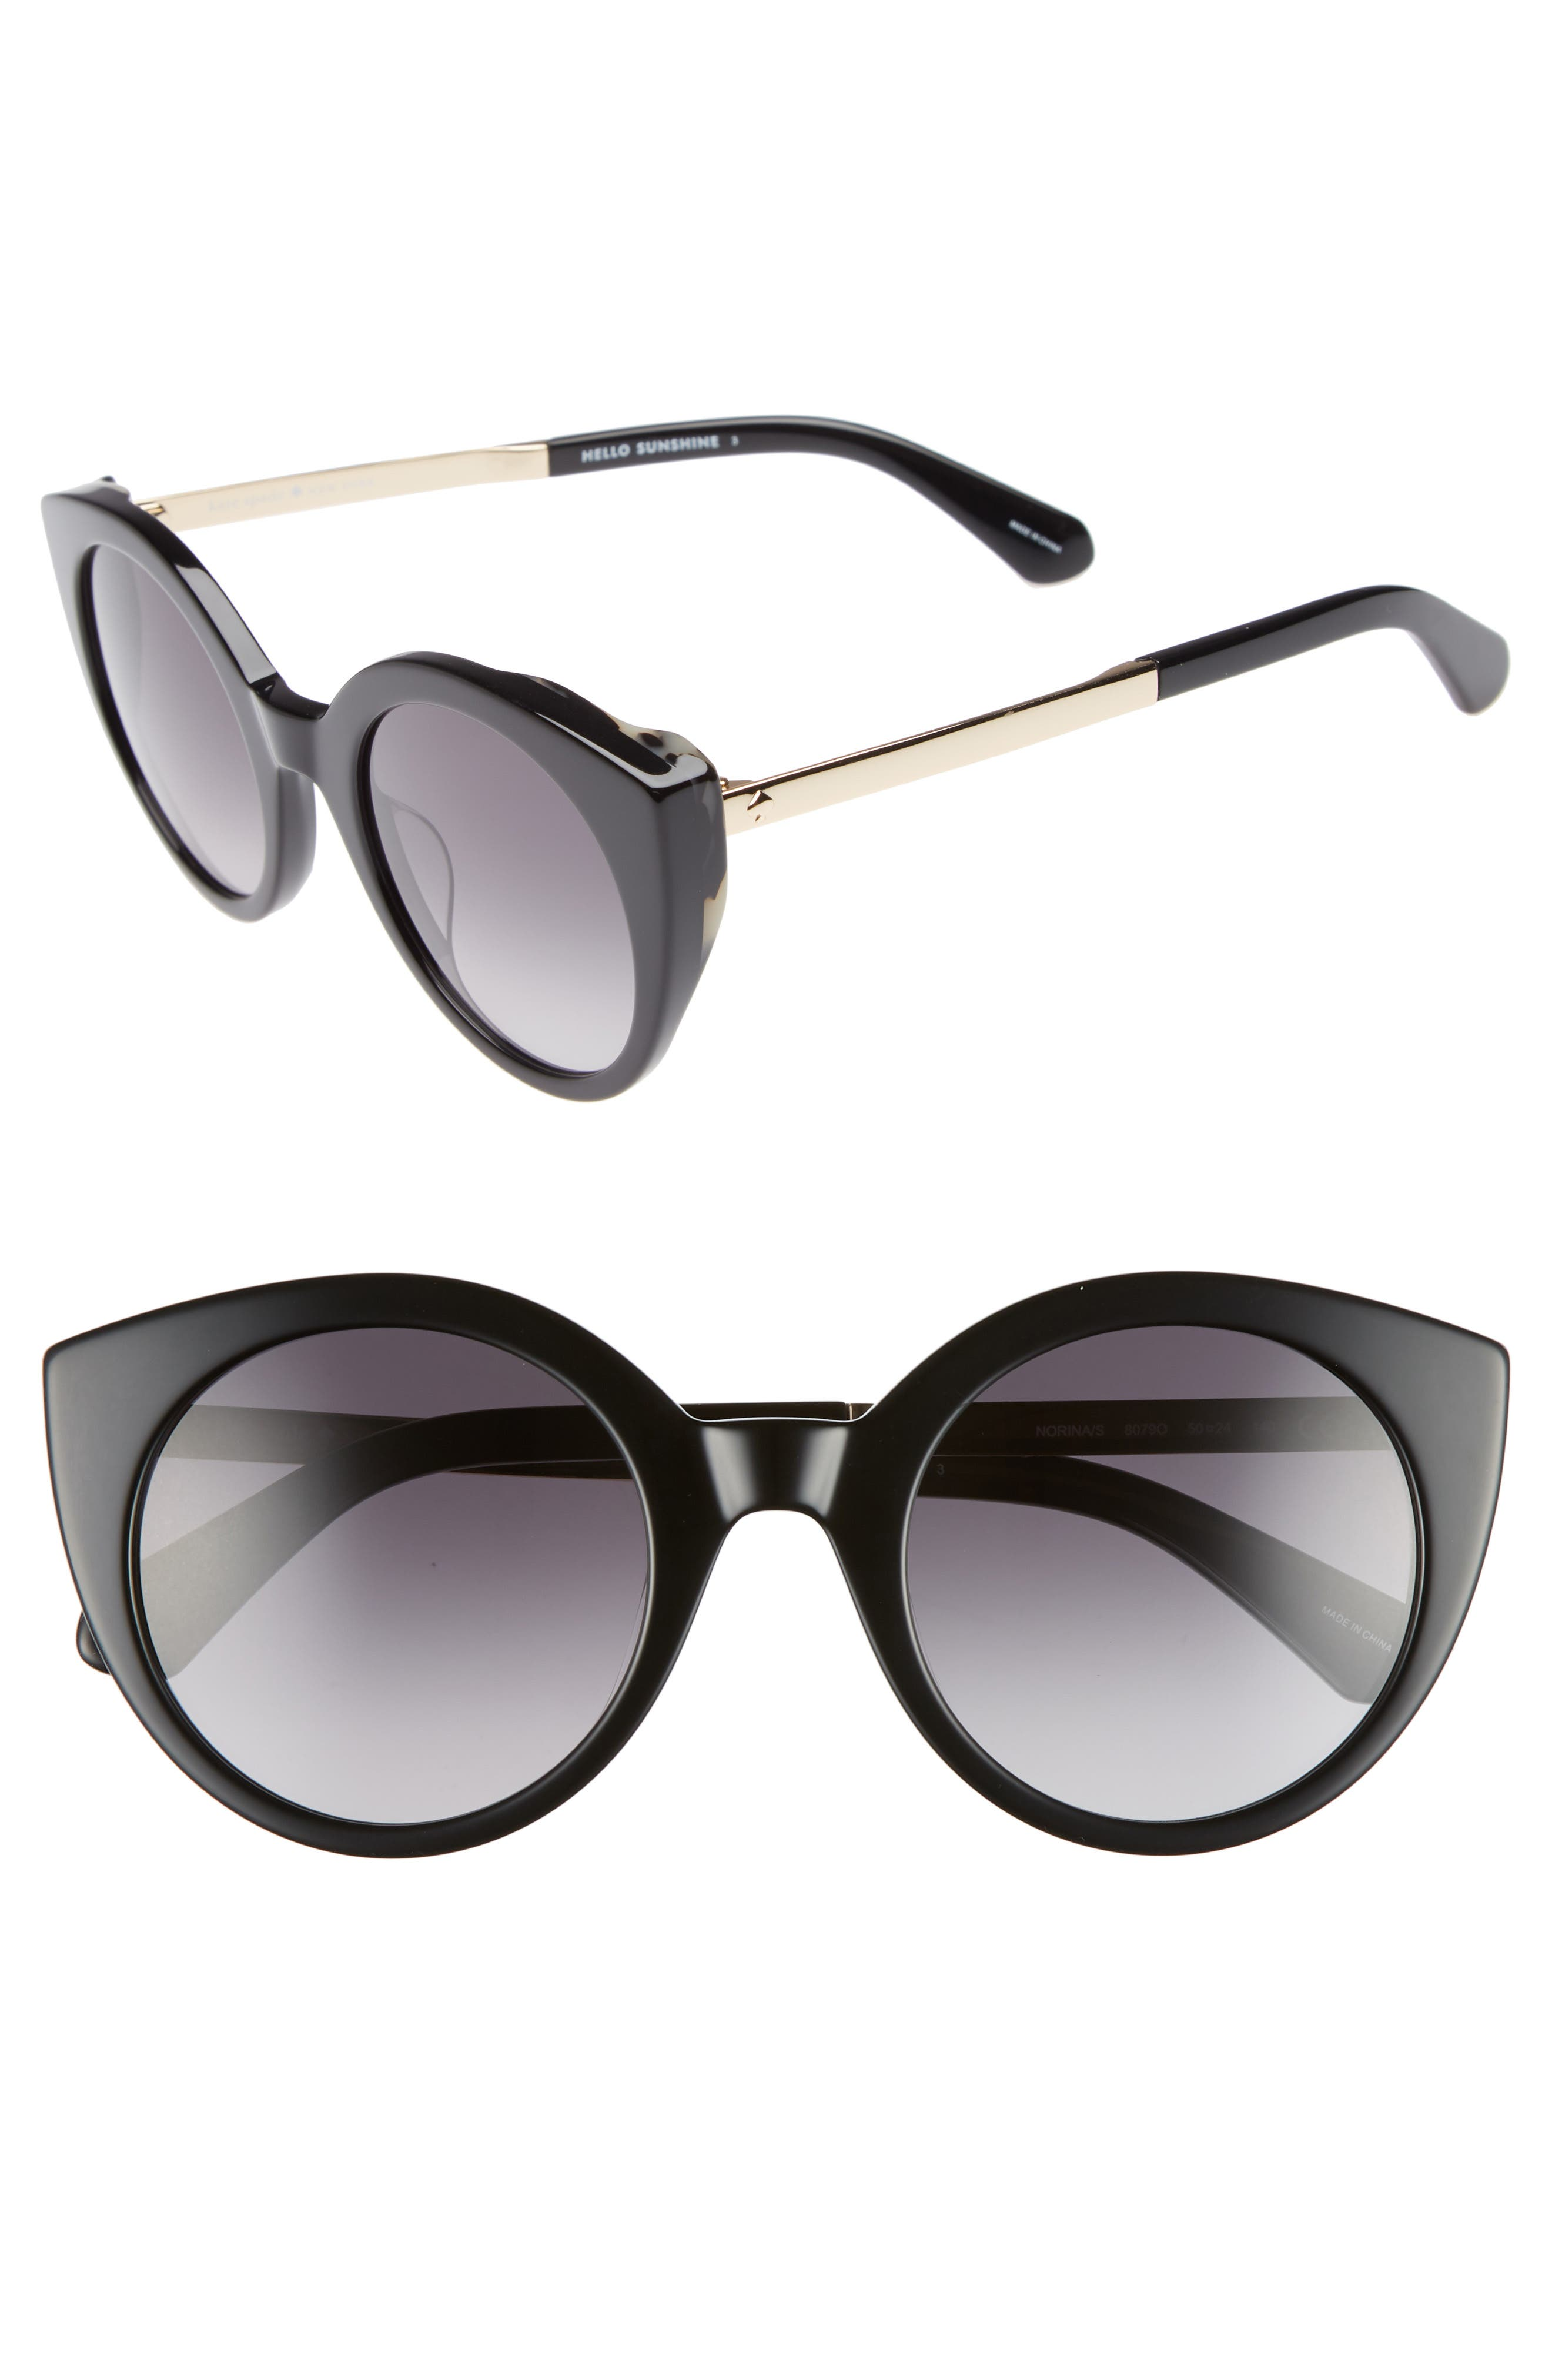 norinas 50mm cat eye sunglasses,                             Main thumbnail 1, color,                             001